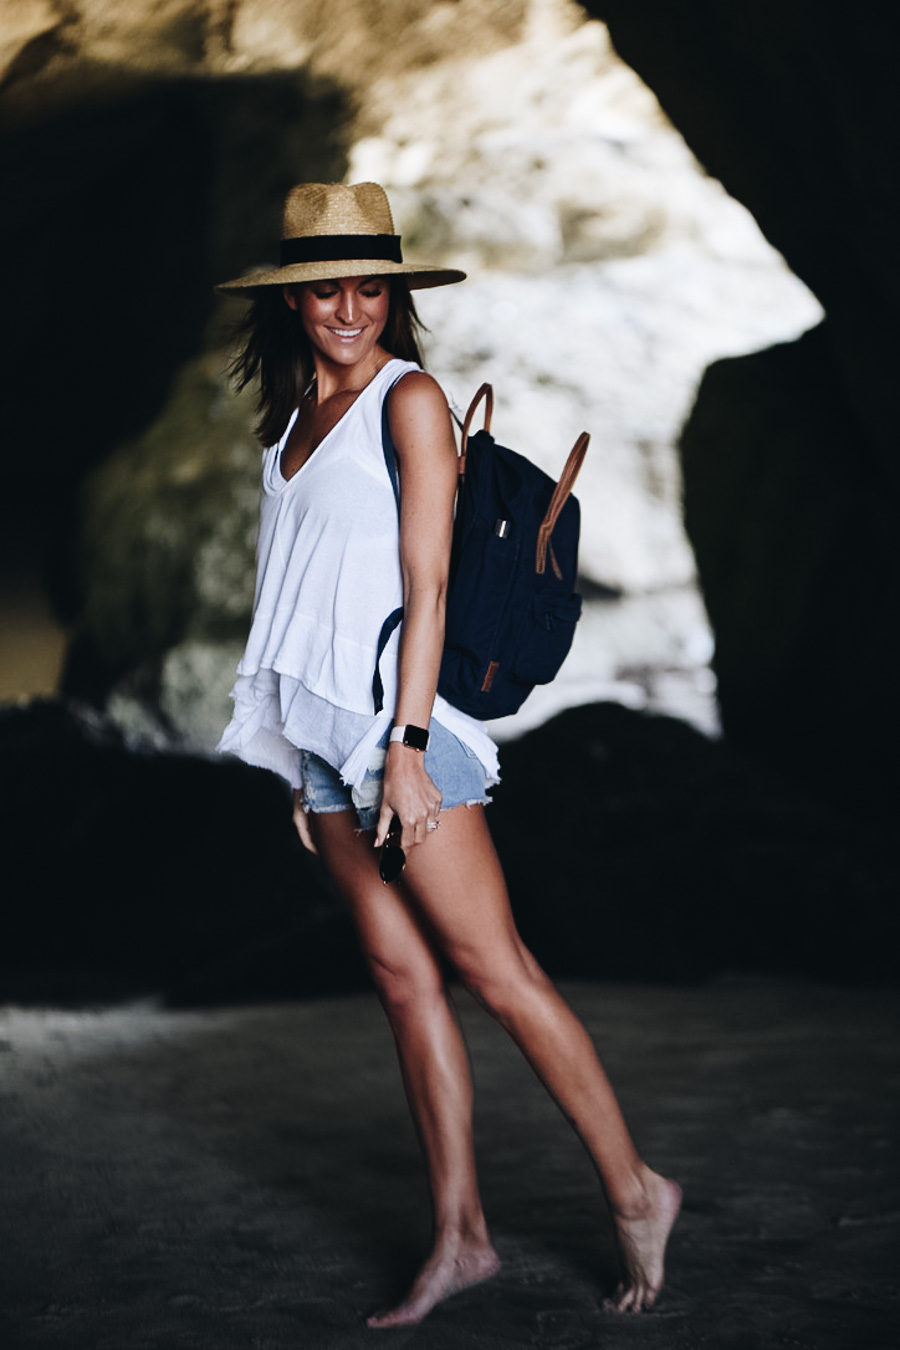 woman with fjallraven backpack exploring thousand steps beach sea cave laguna california